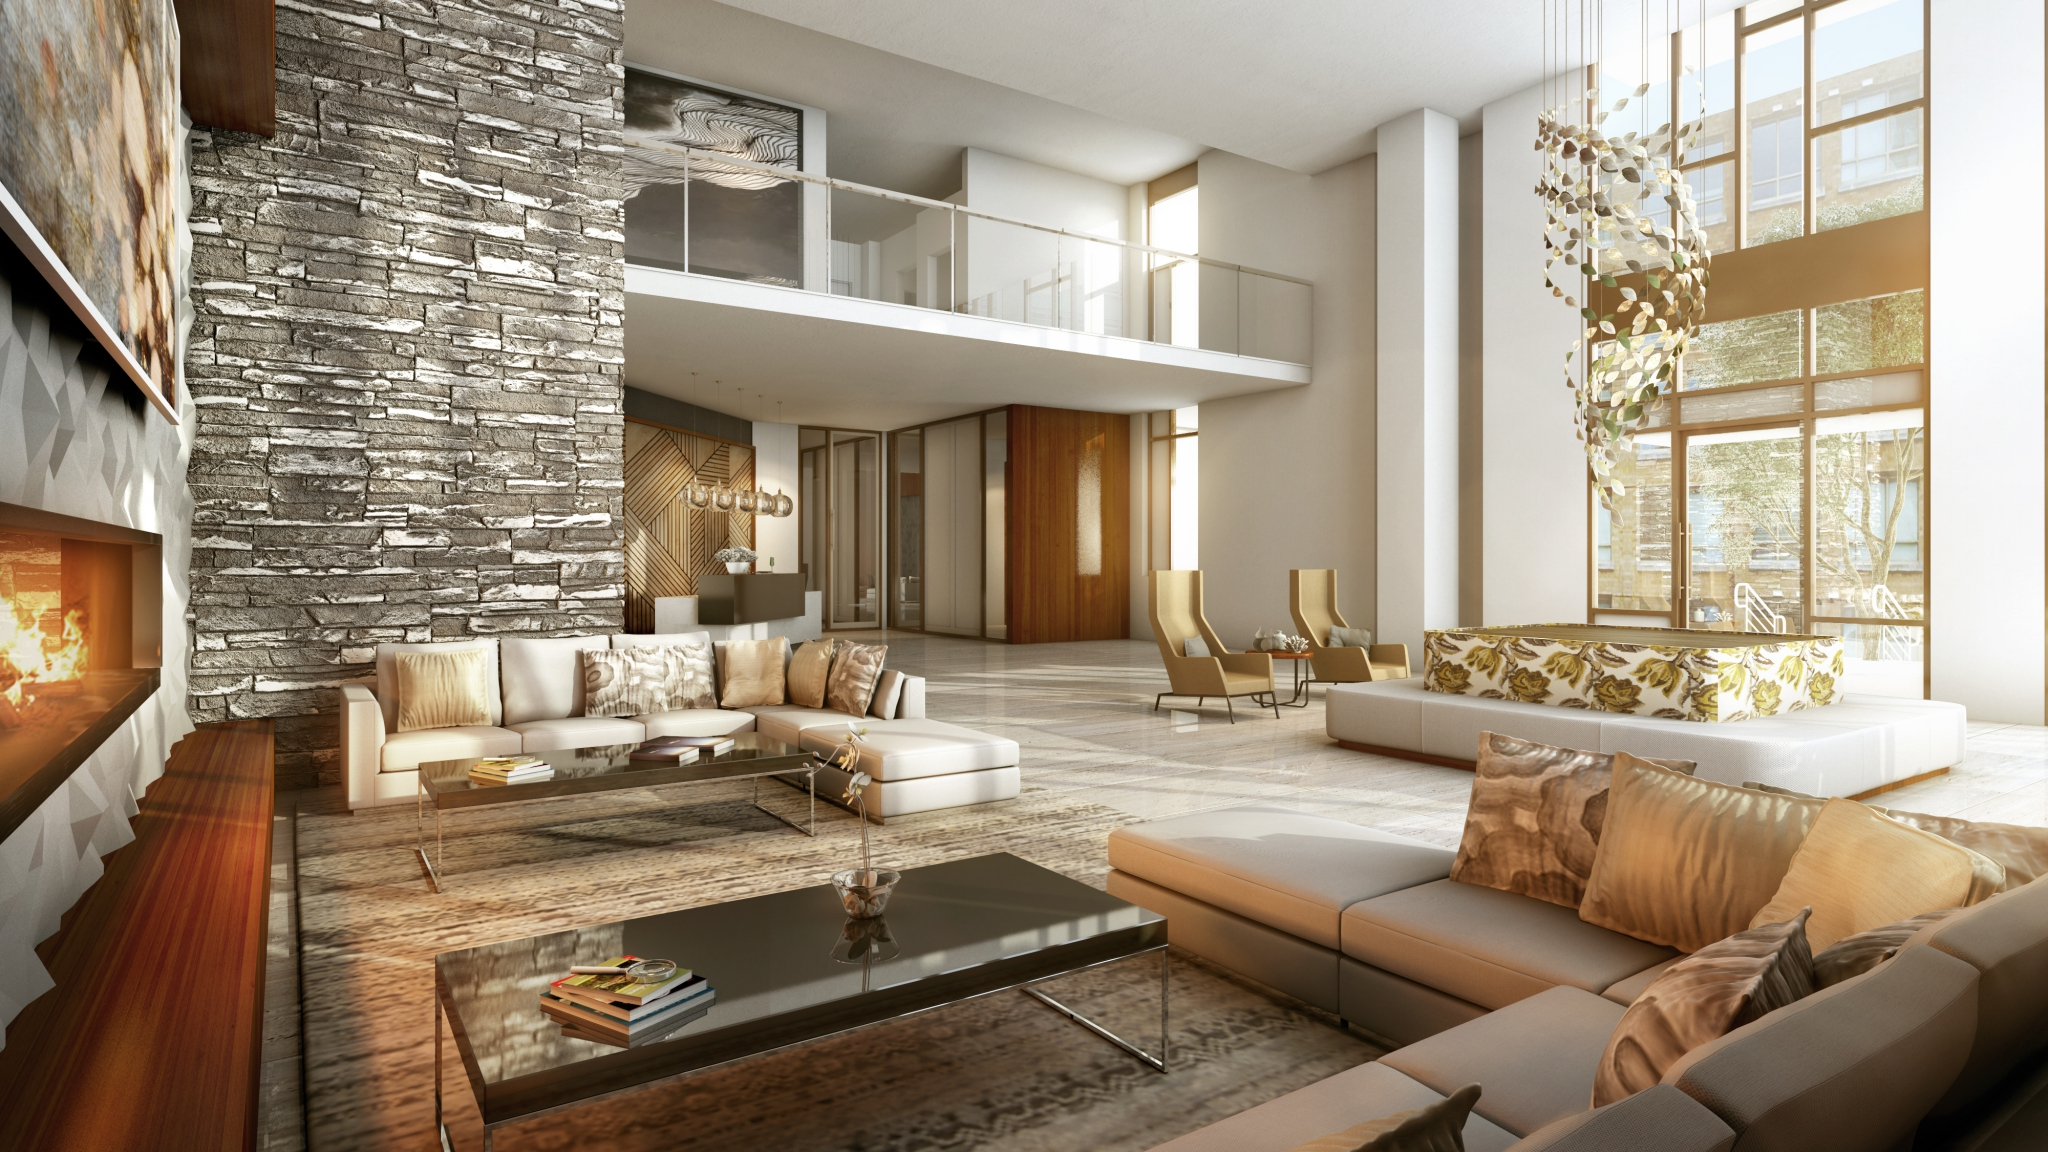 Interior of lobby with modern couches, fireplace, and rock wall